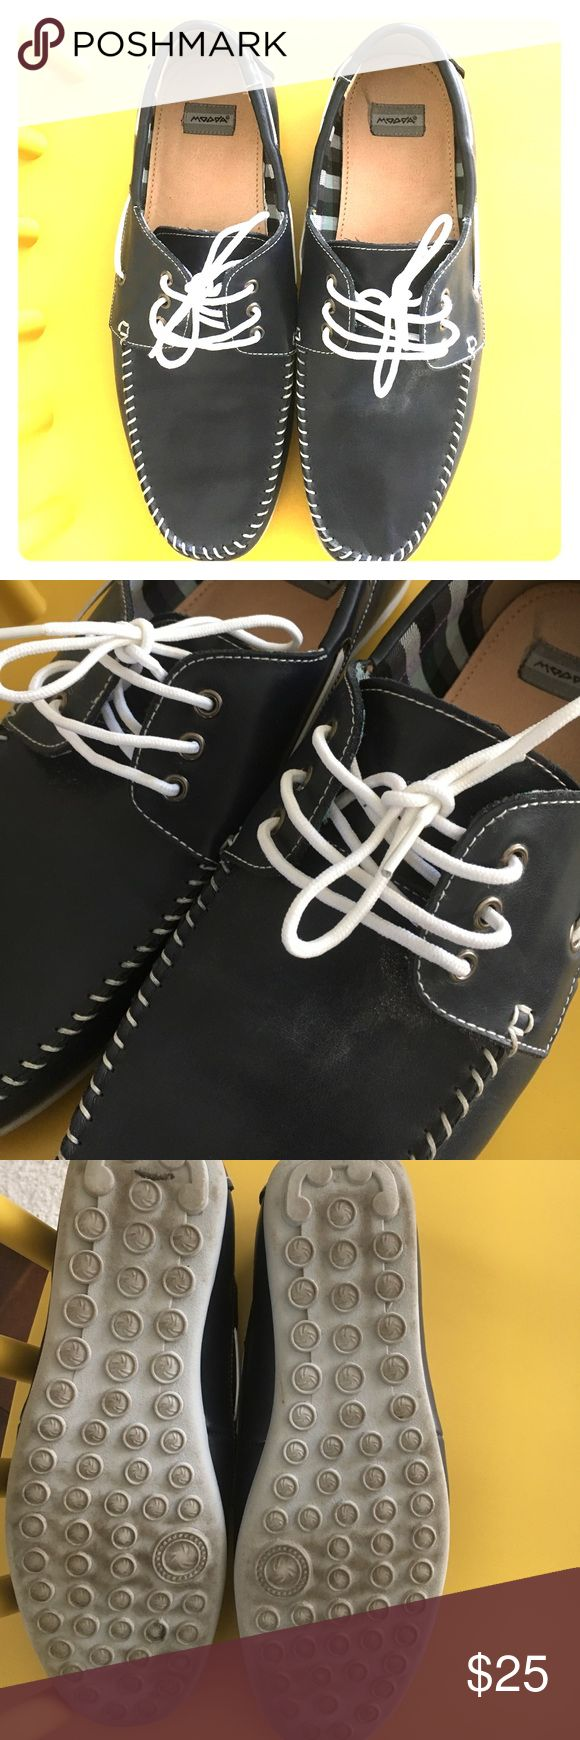 Men's navy blue boat shoes Navy blue leather boat shoes. Men's size 9. Gray rubber grip bottoms. White laces. Worn a few times, but good condition! moova Shoes Boat Shoes